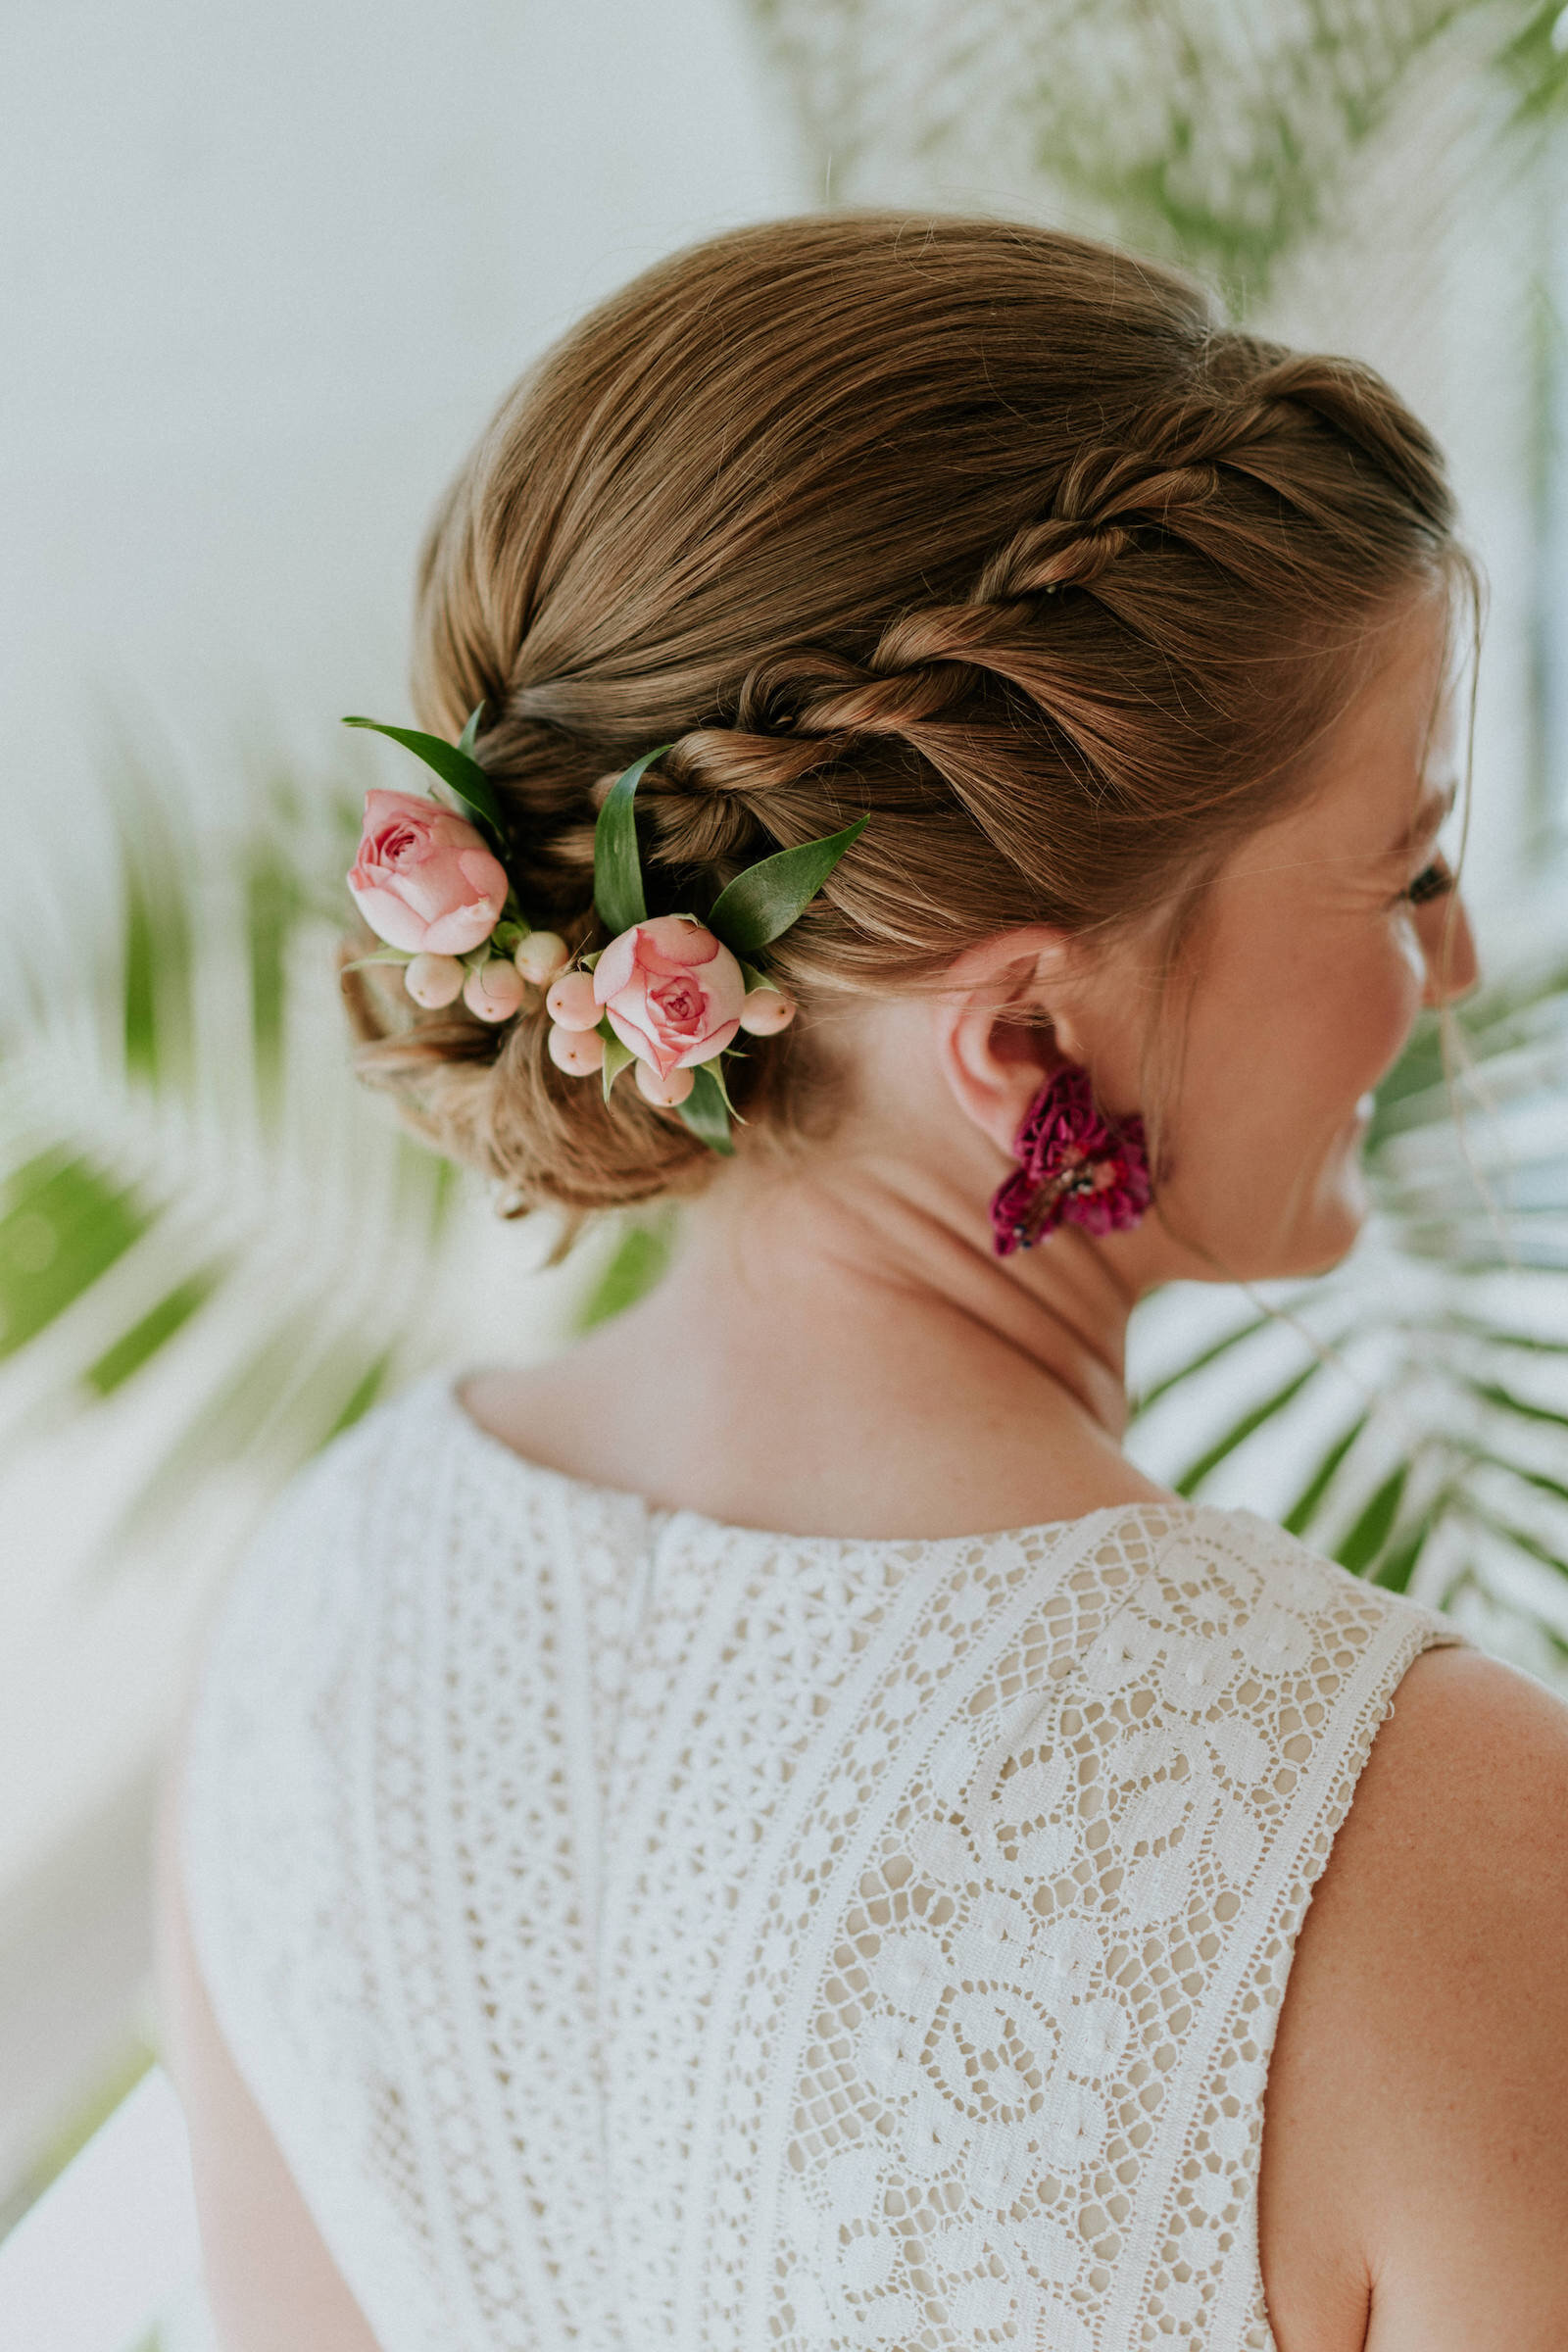 Beija Flor bridal hair flowers, photo by James Day